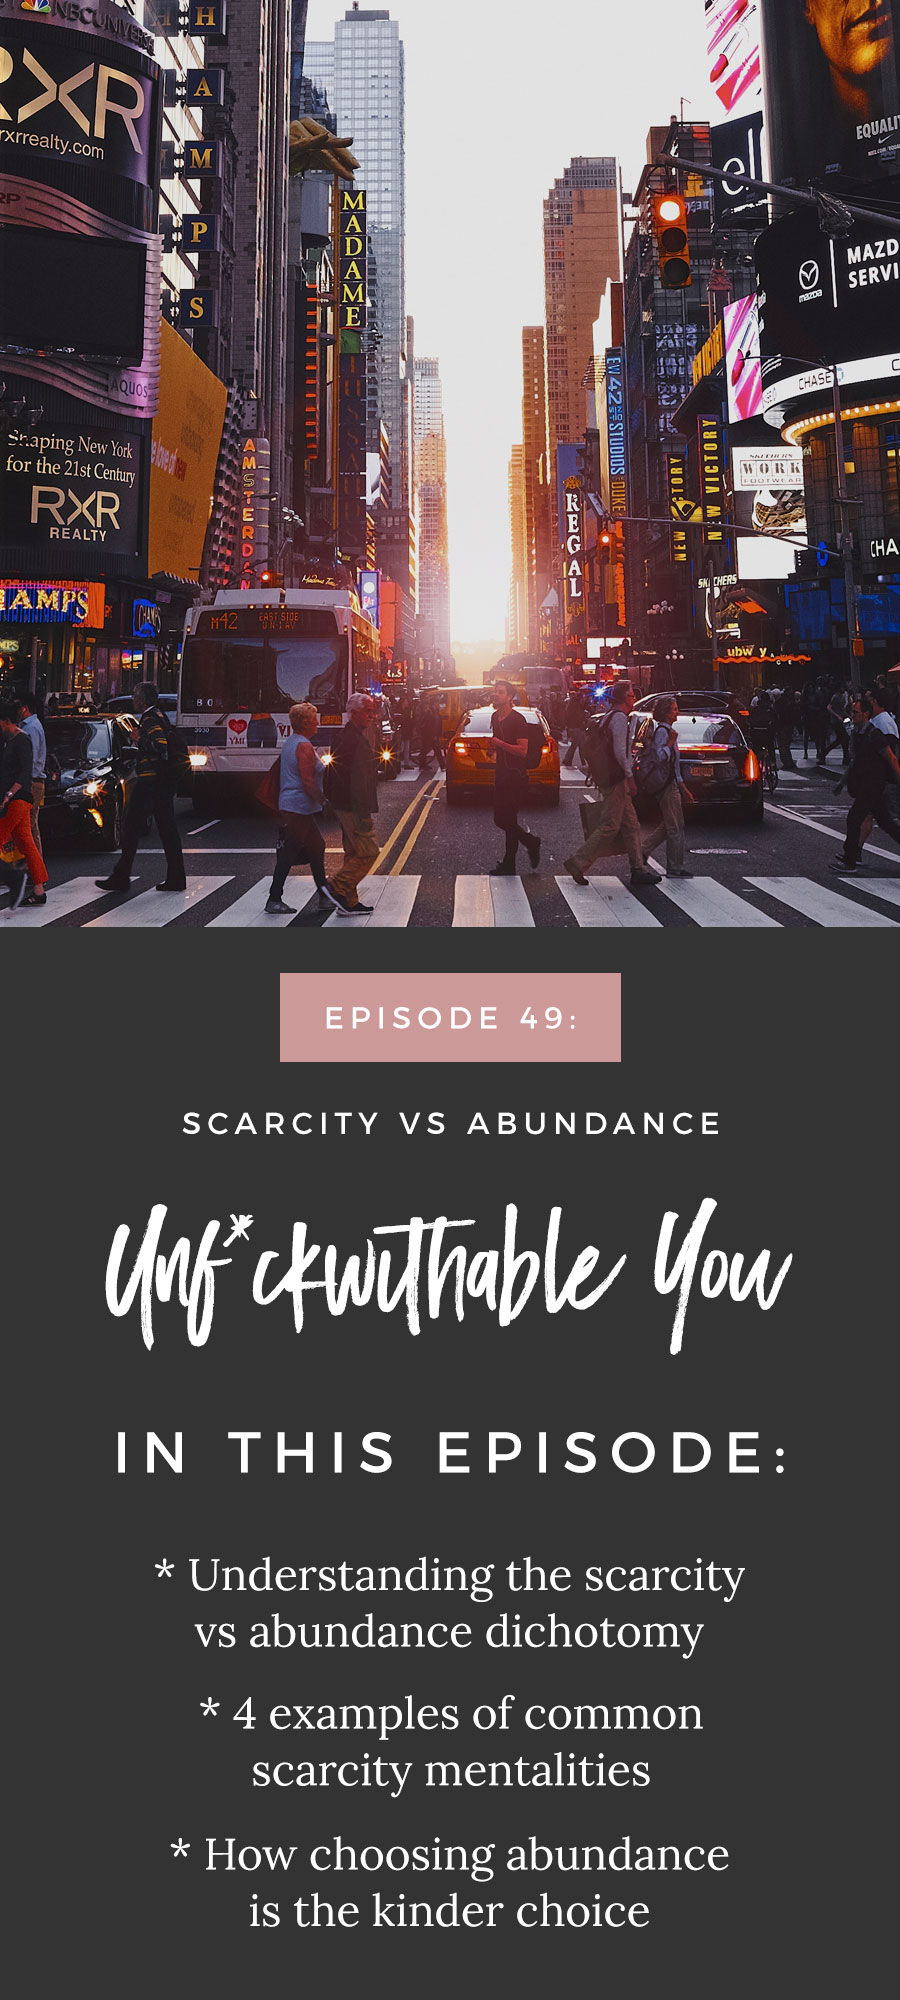 Unf*ckwithable You Podcast Episode 49